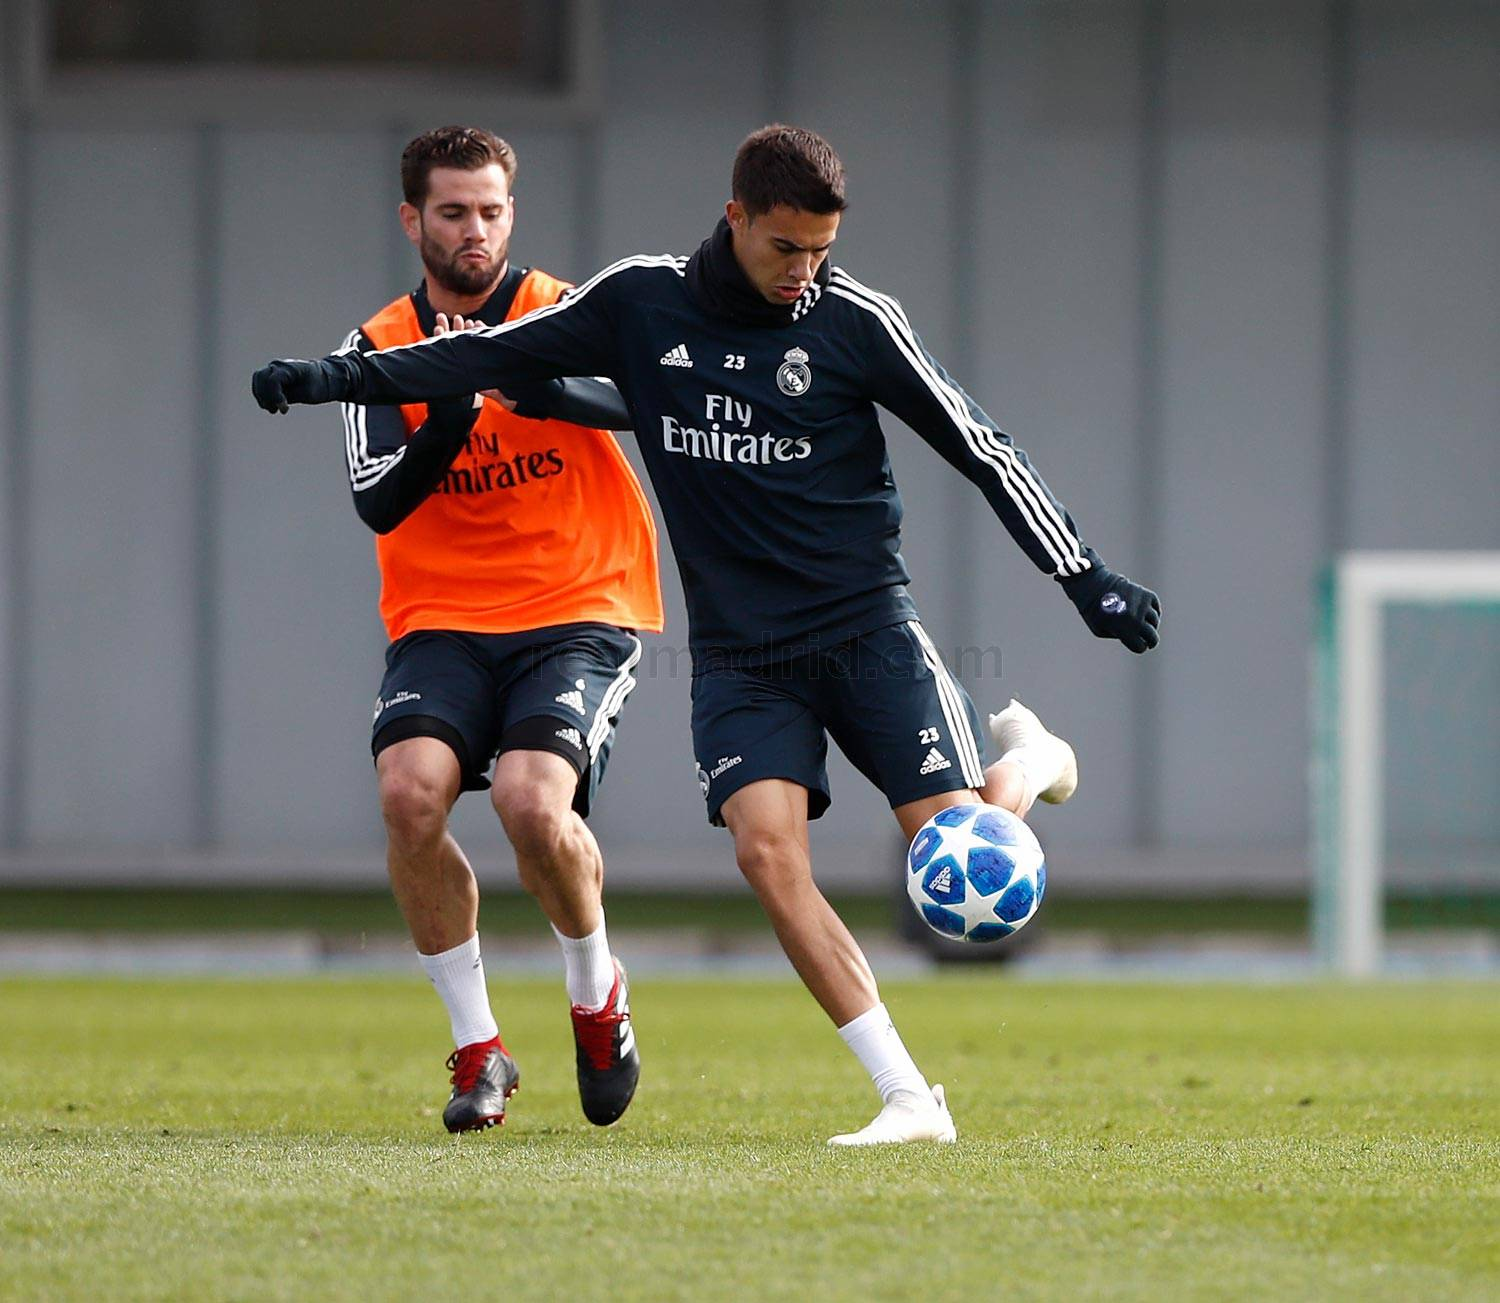 Real Madrid - Entrenamiento del Real Madrid - 05-11-2018